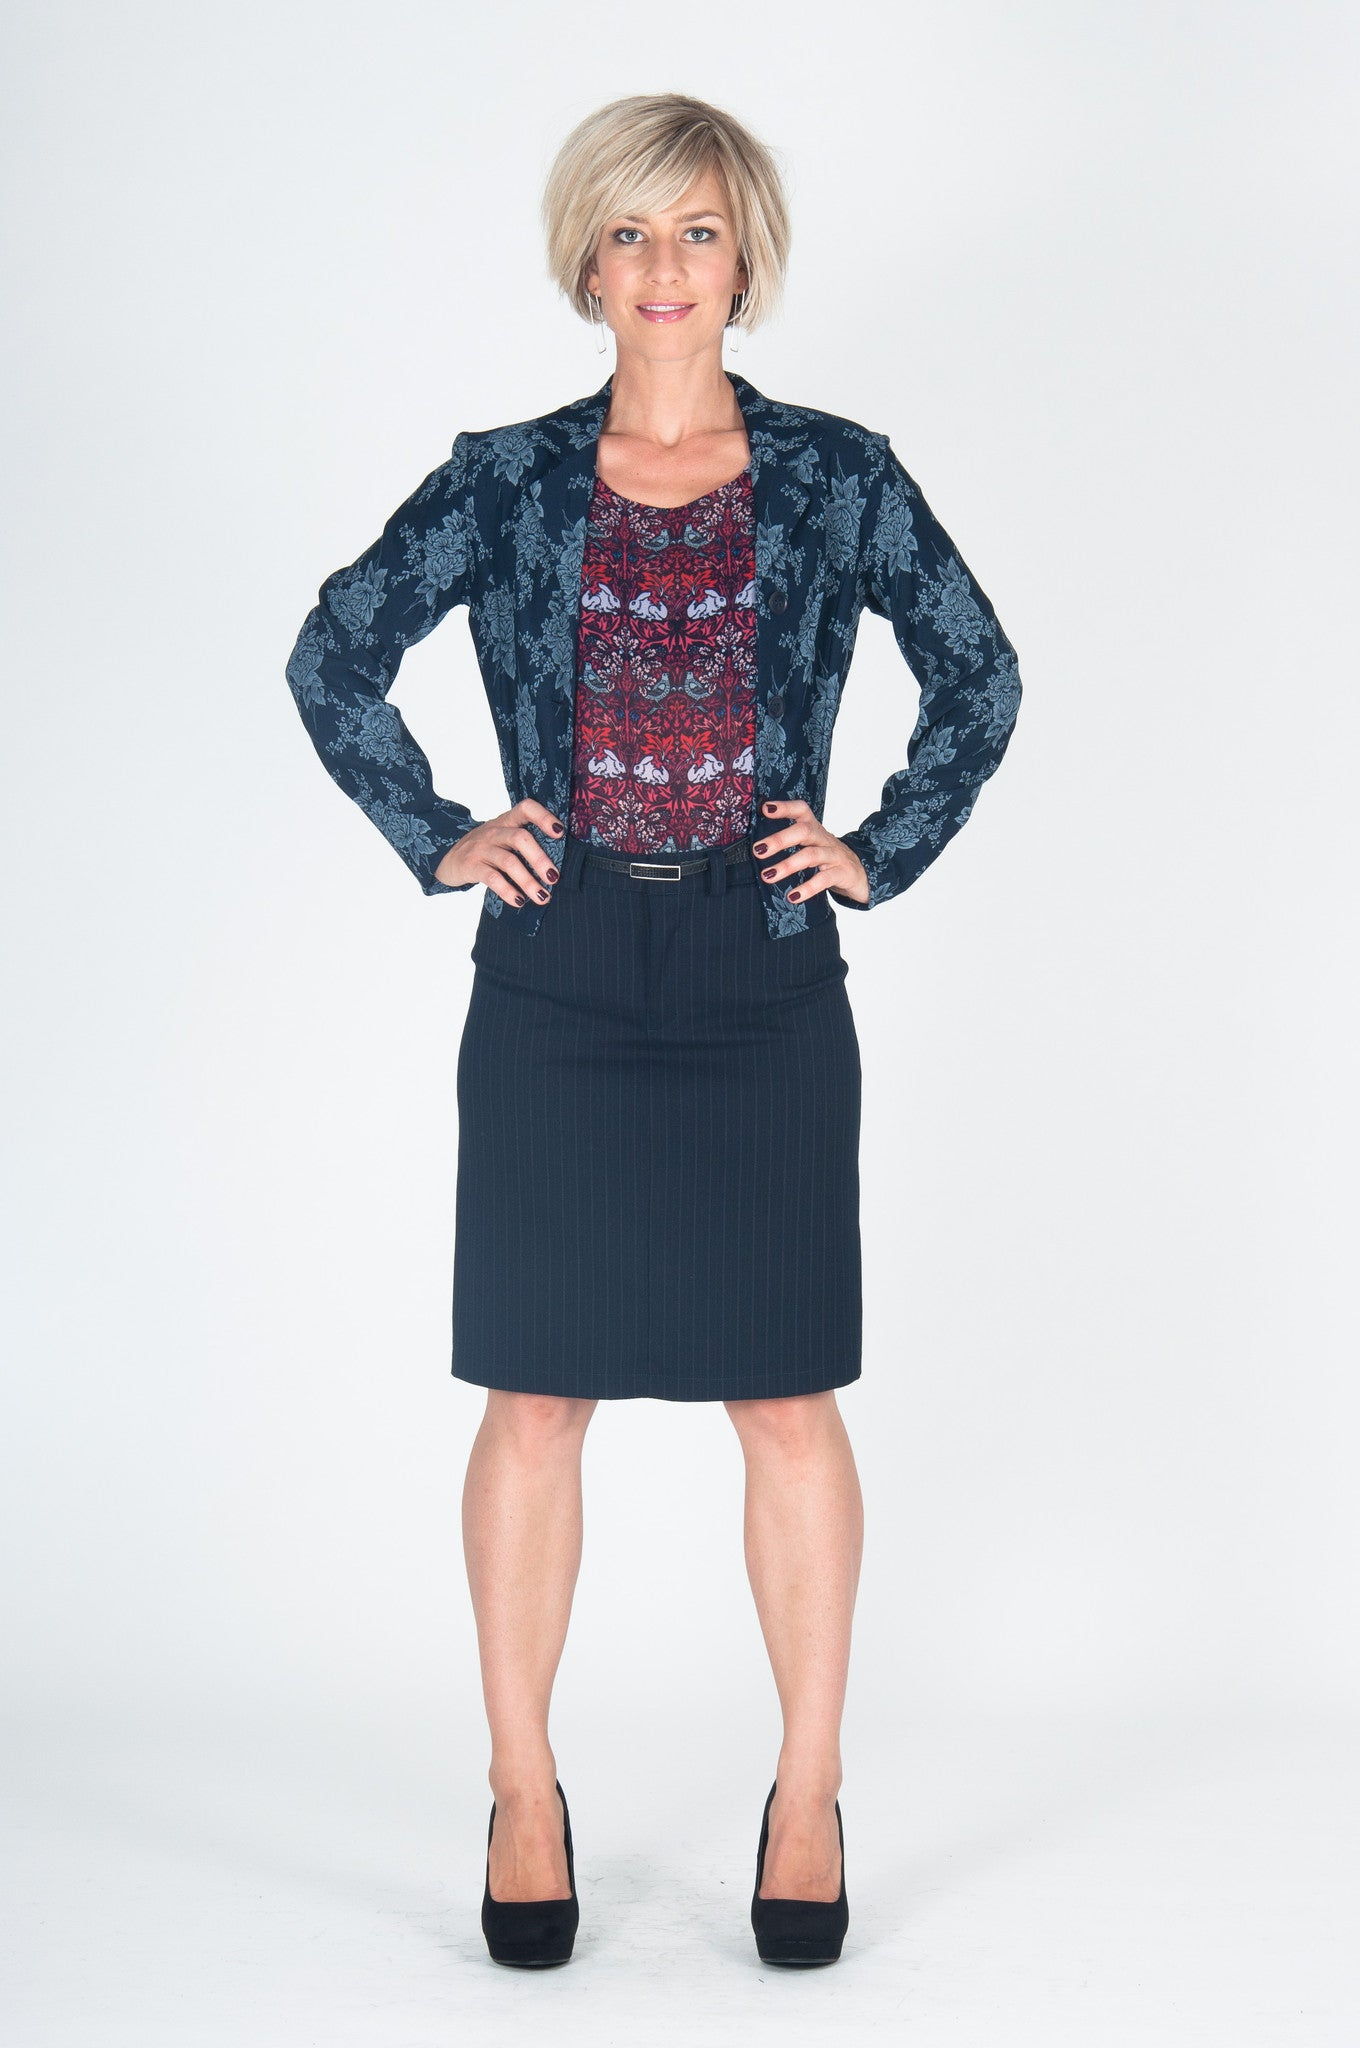 Vesta 2 Pocket Skirt - Pinstripe was $168 now $148